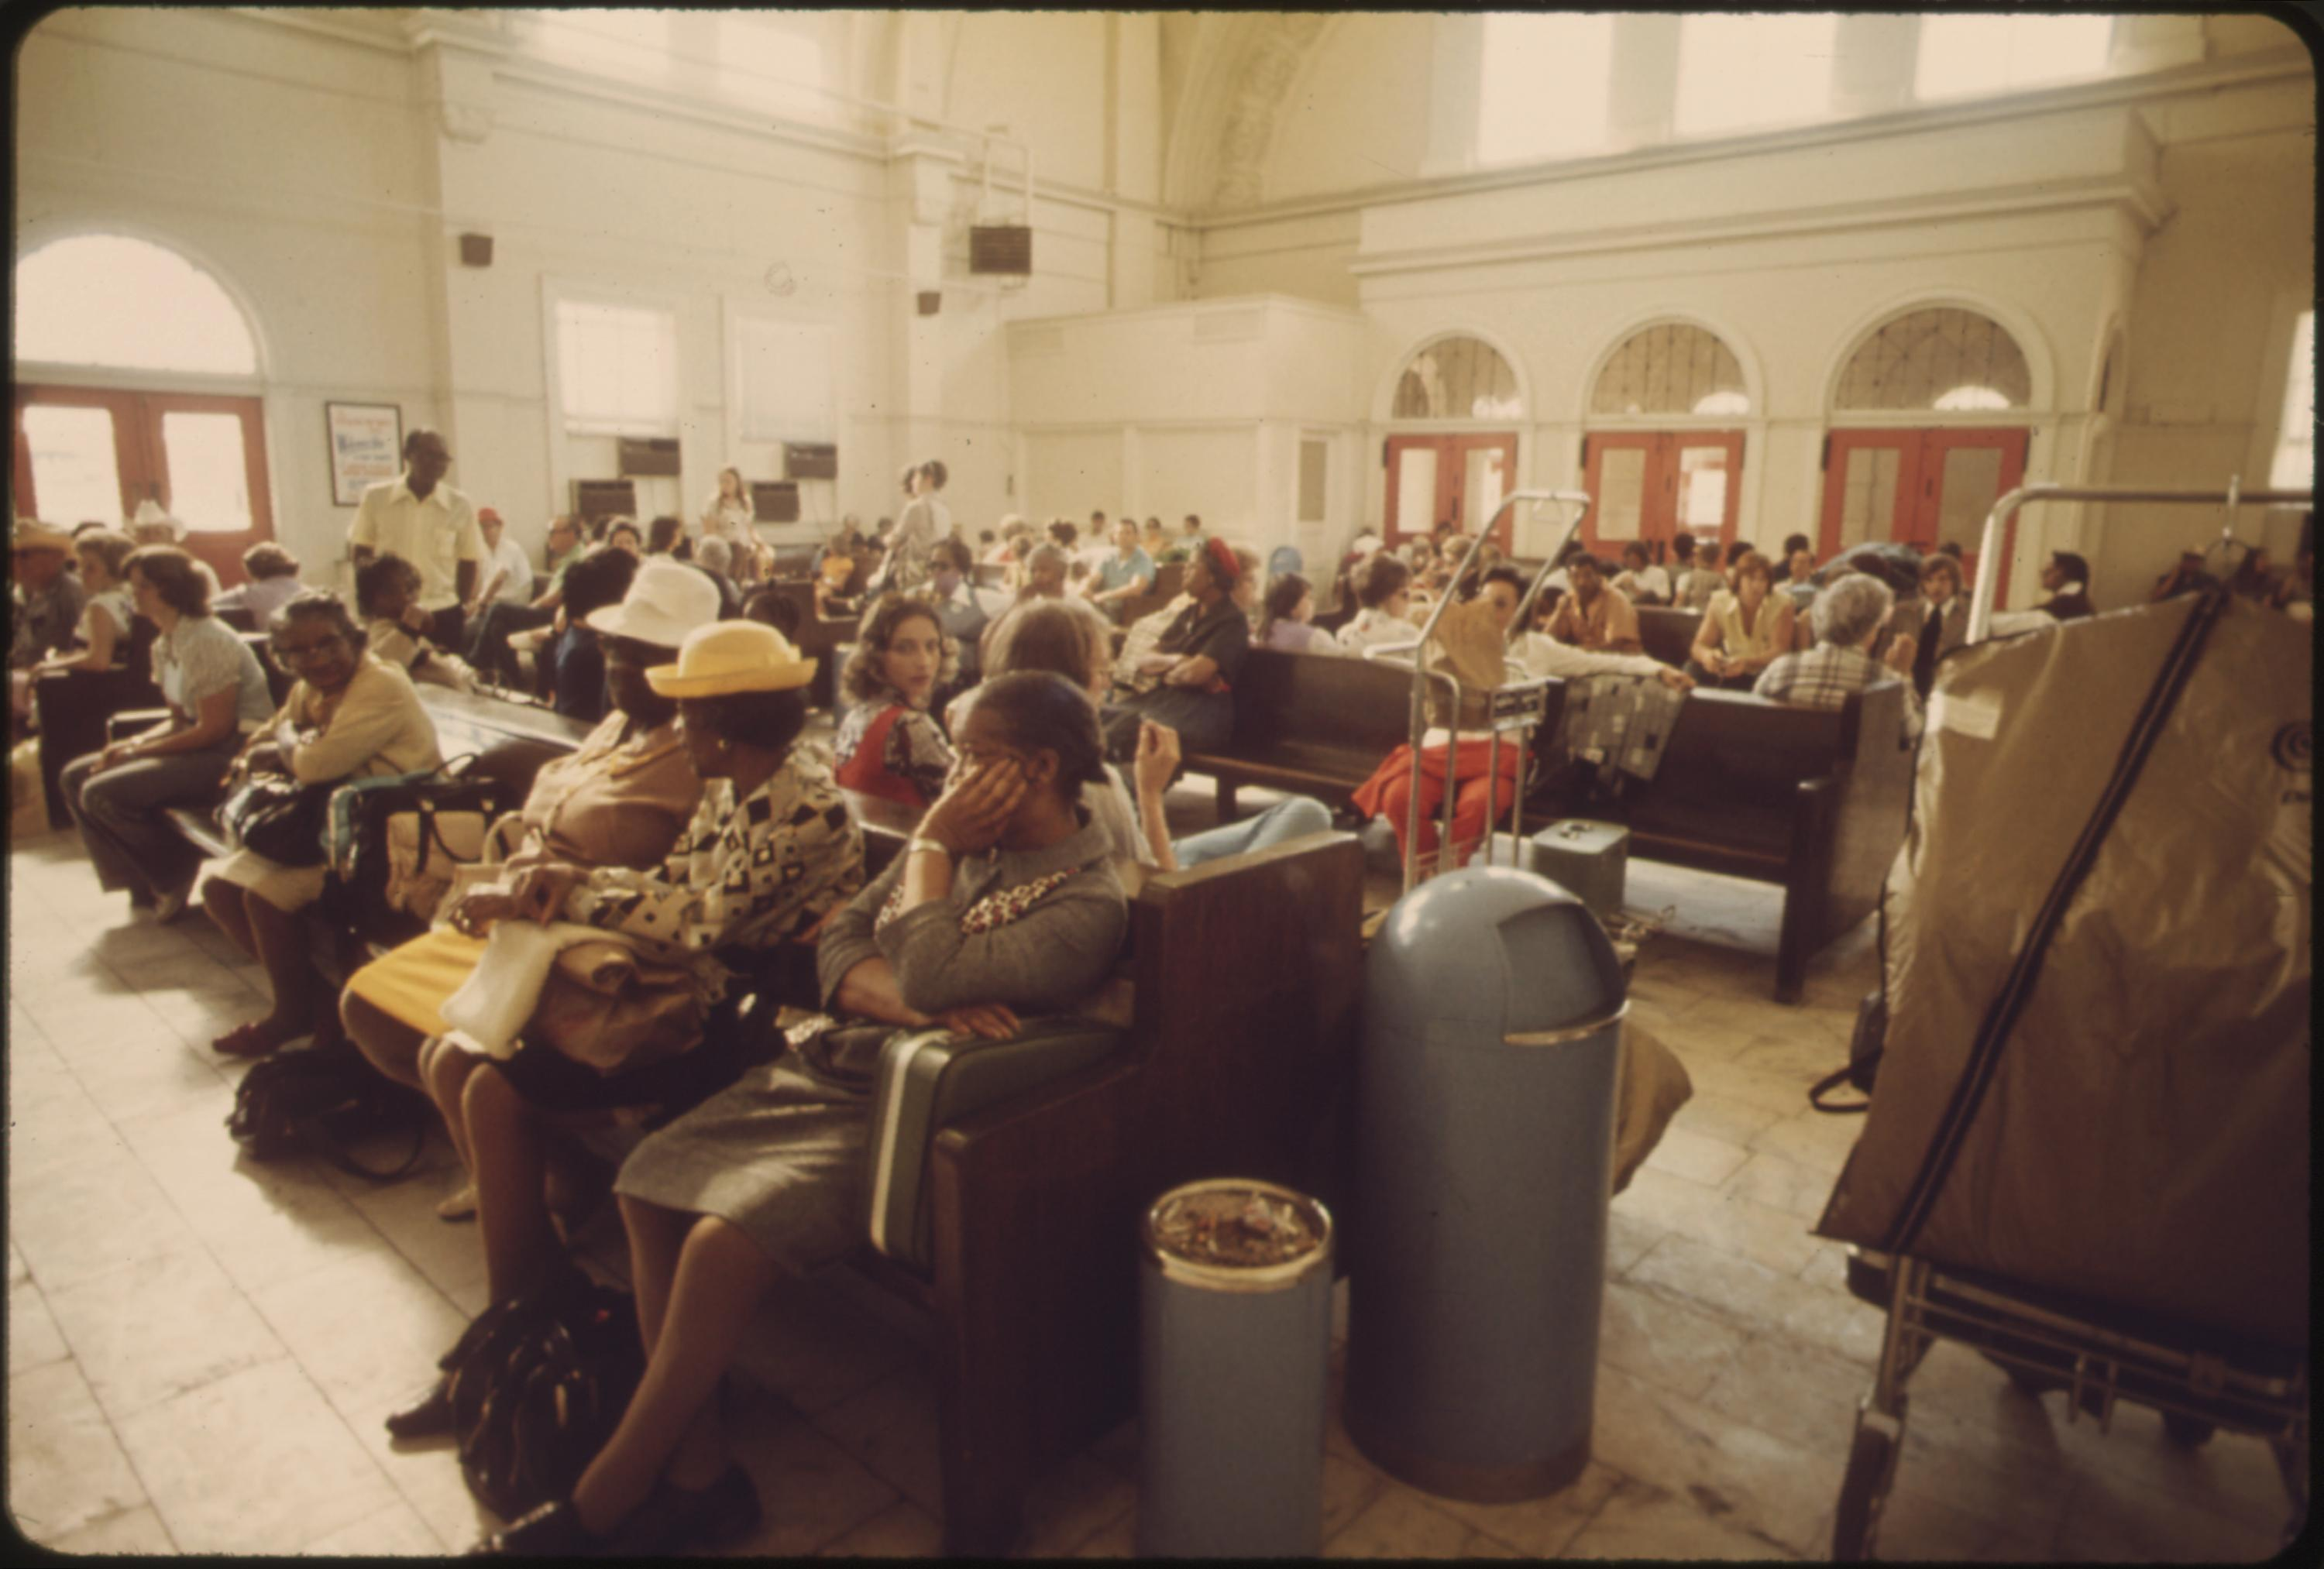 Passengers waiting for a train at the Fort Worth, Texas station, June 1974